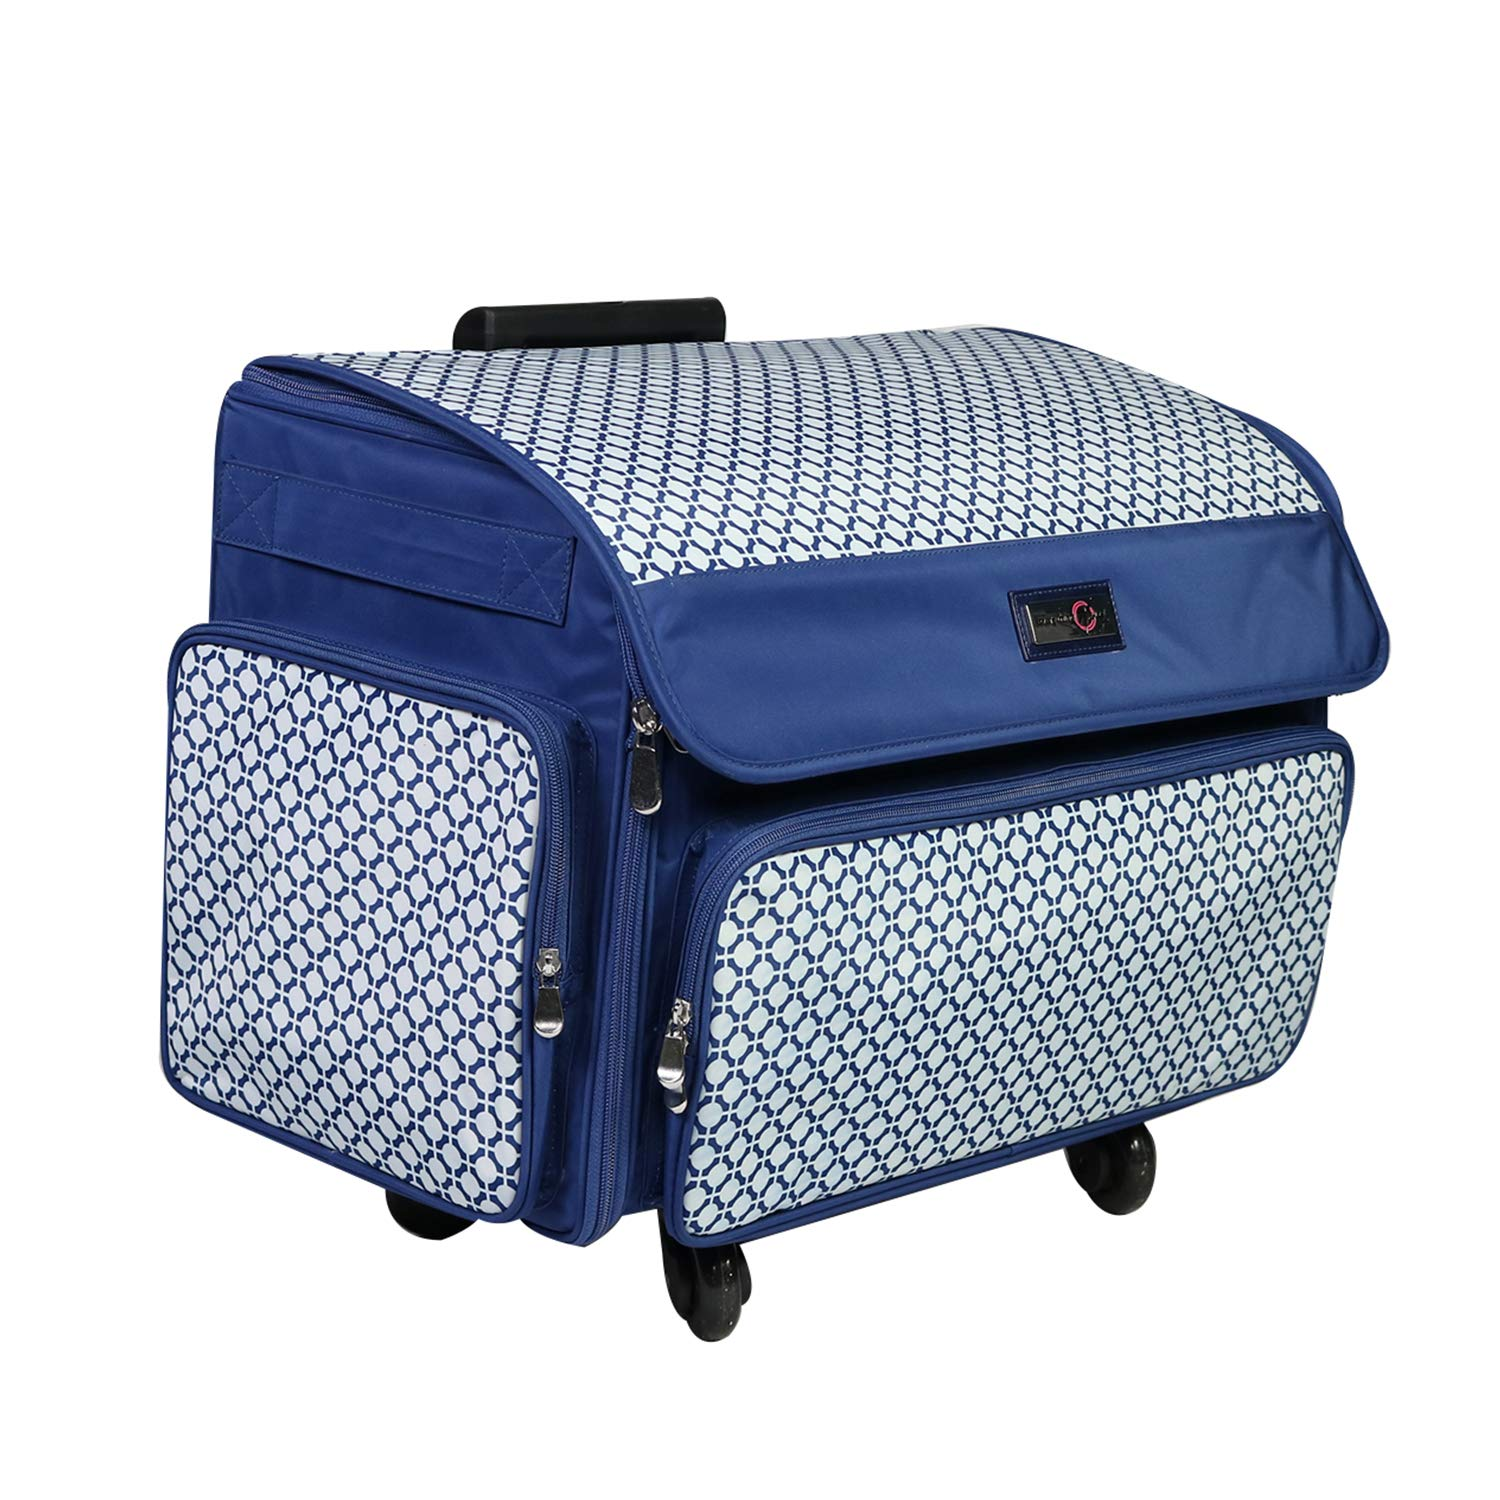 Singer Bernina /& Most Machines Everything Mary 4 Wheels Collapsible Deluxe Sewing Machine Storage Case Blue Rolling Trolley Carrying Bag for Brother Travel Tote Organizer for Accessories